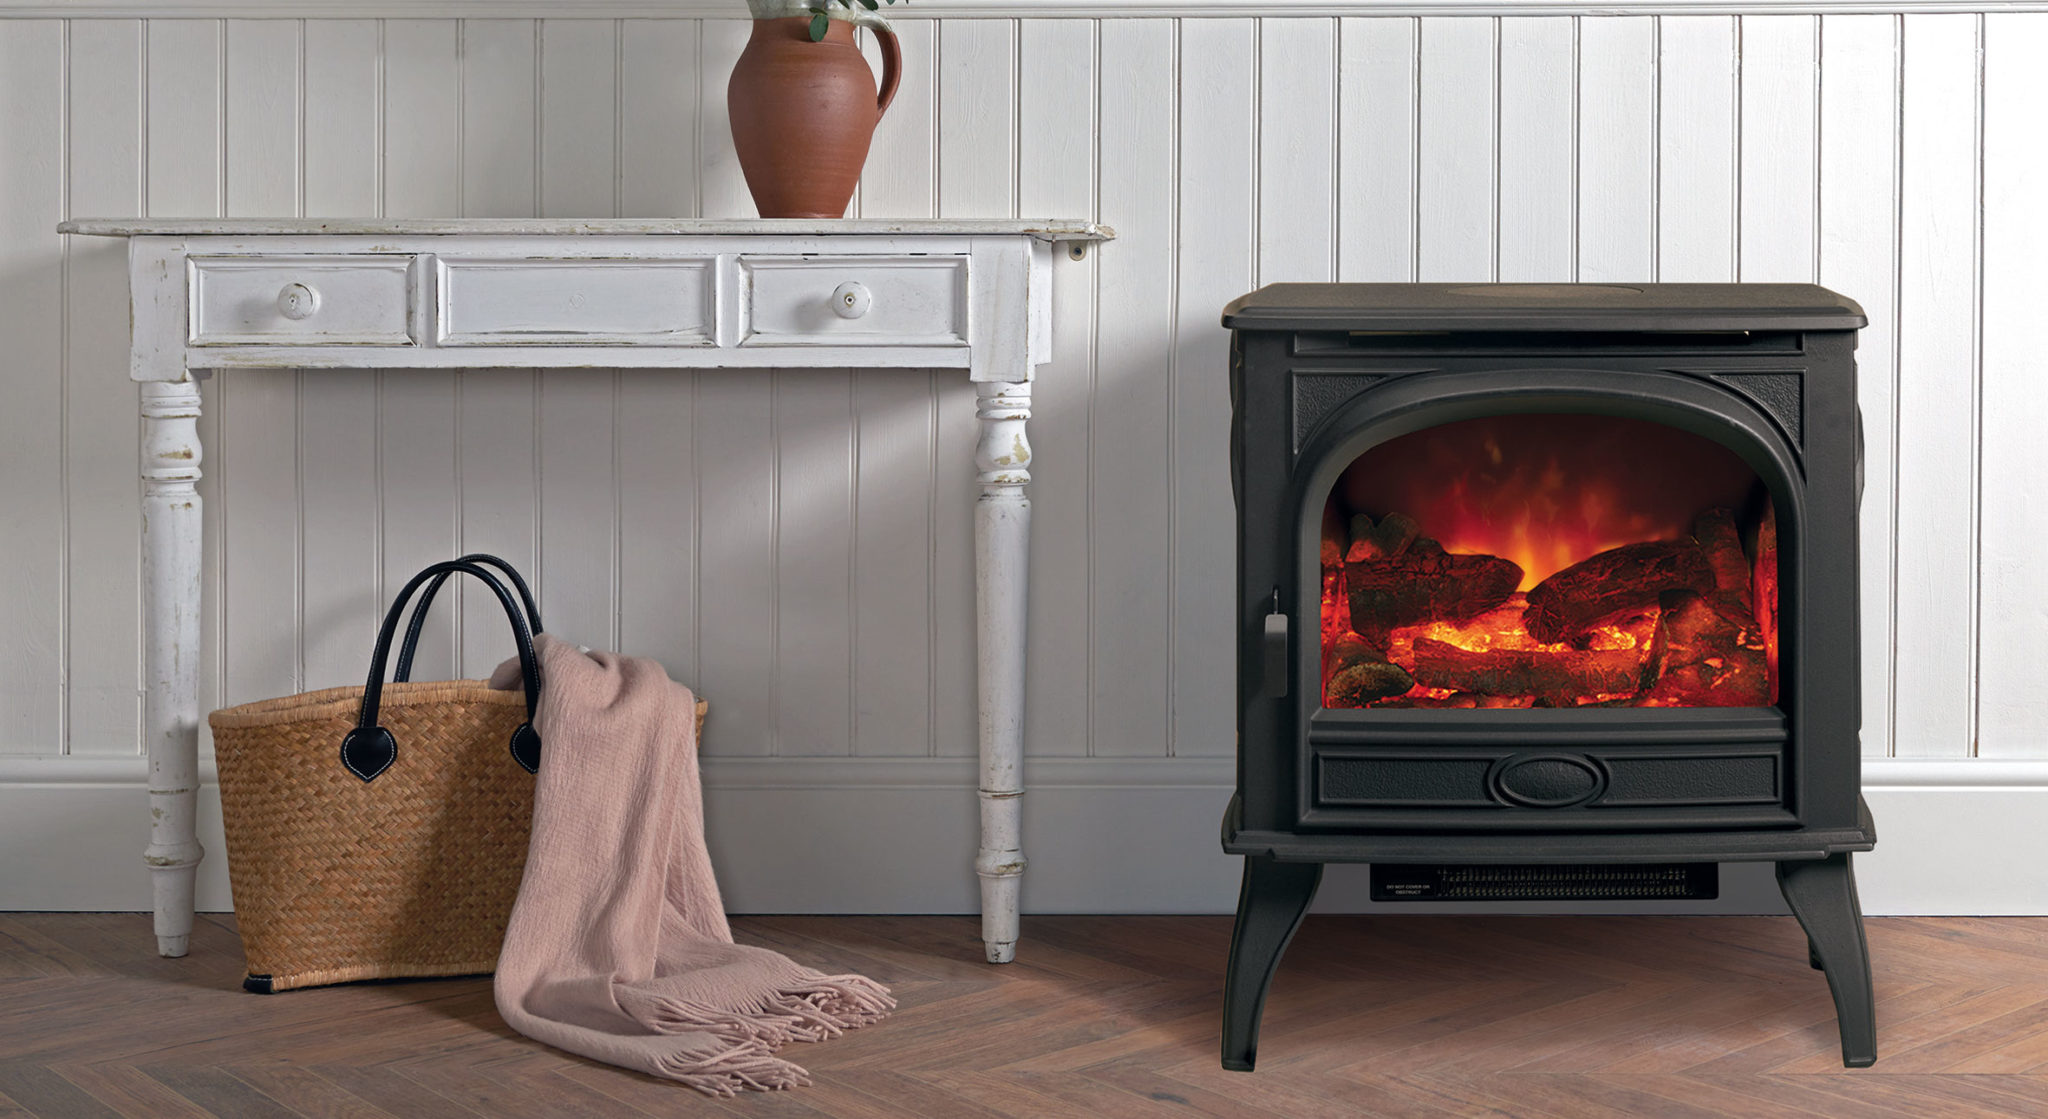 Dovre Electric Stoves: Modern Technology with Traditional Appeal